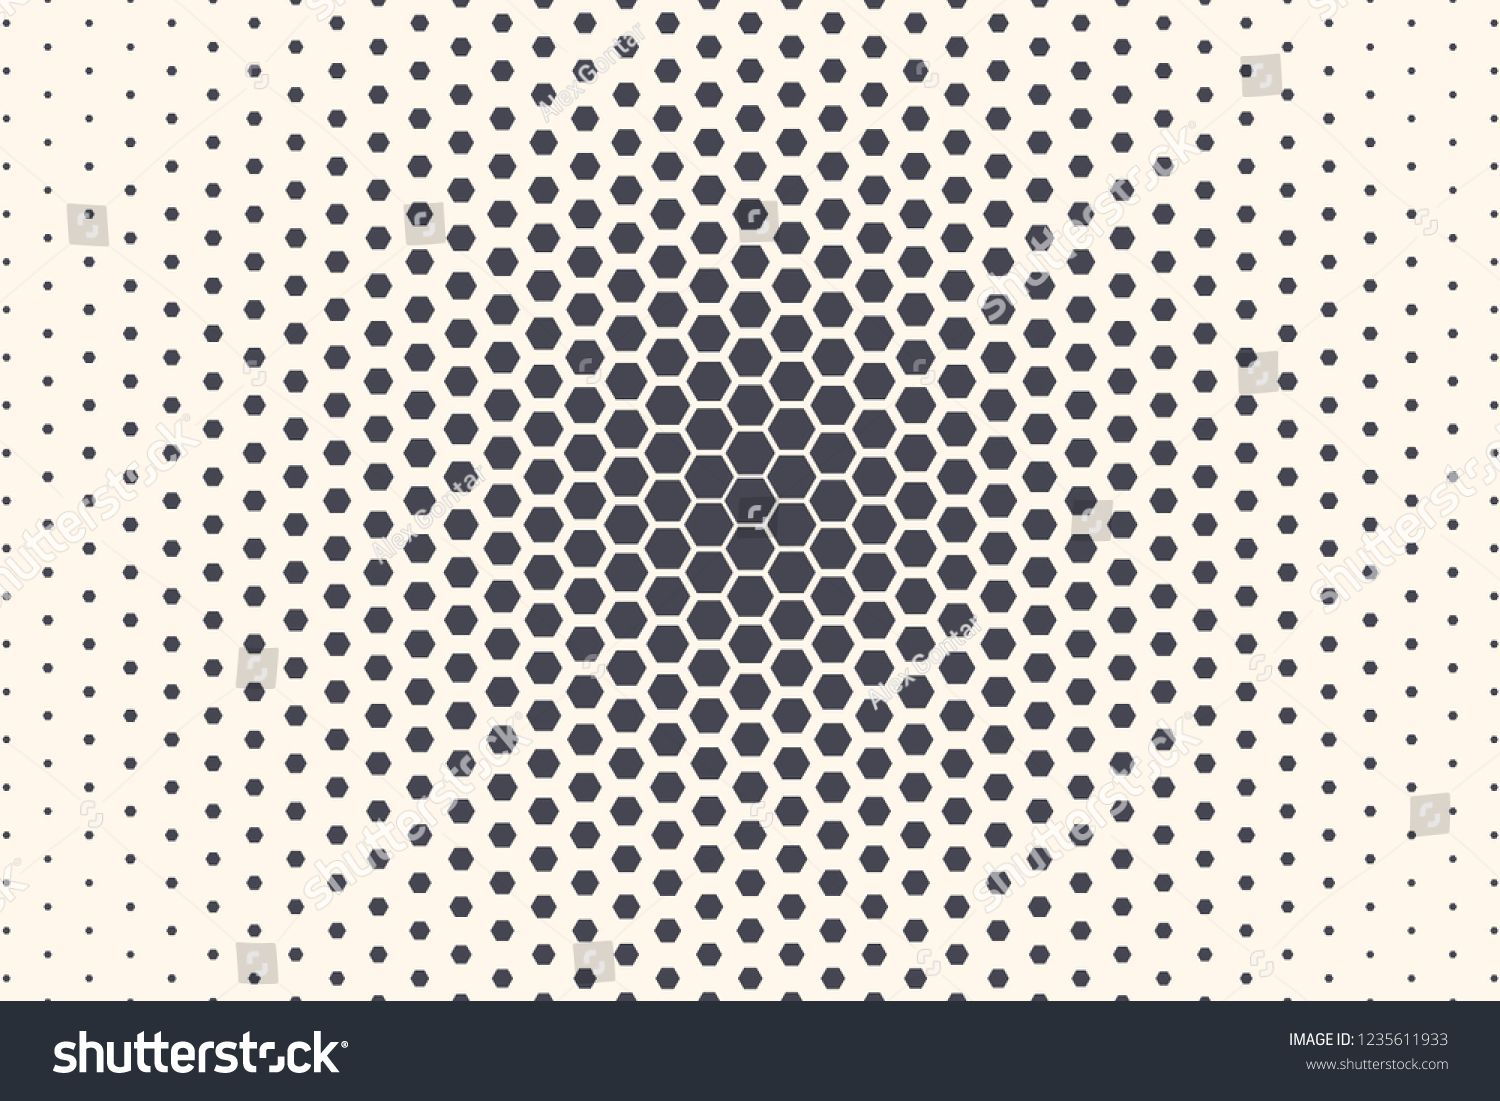 Hexagon Shapes Vector Abstract Geometric Technology Extreme